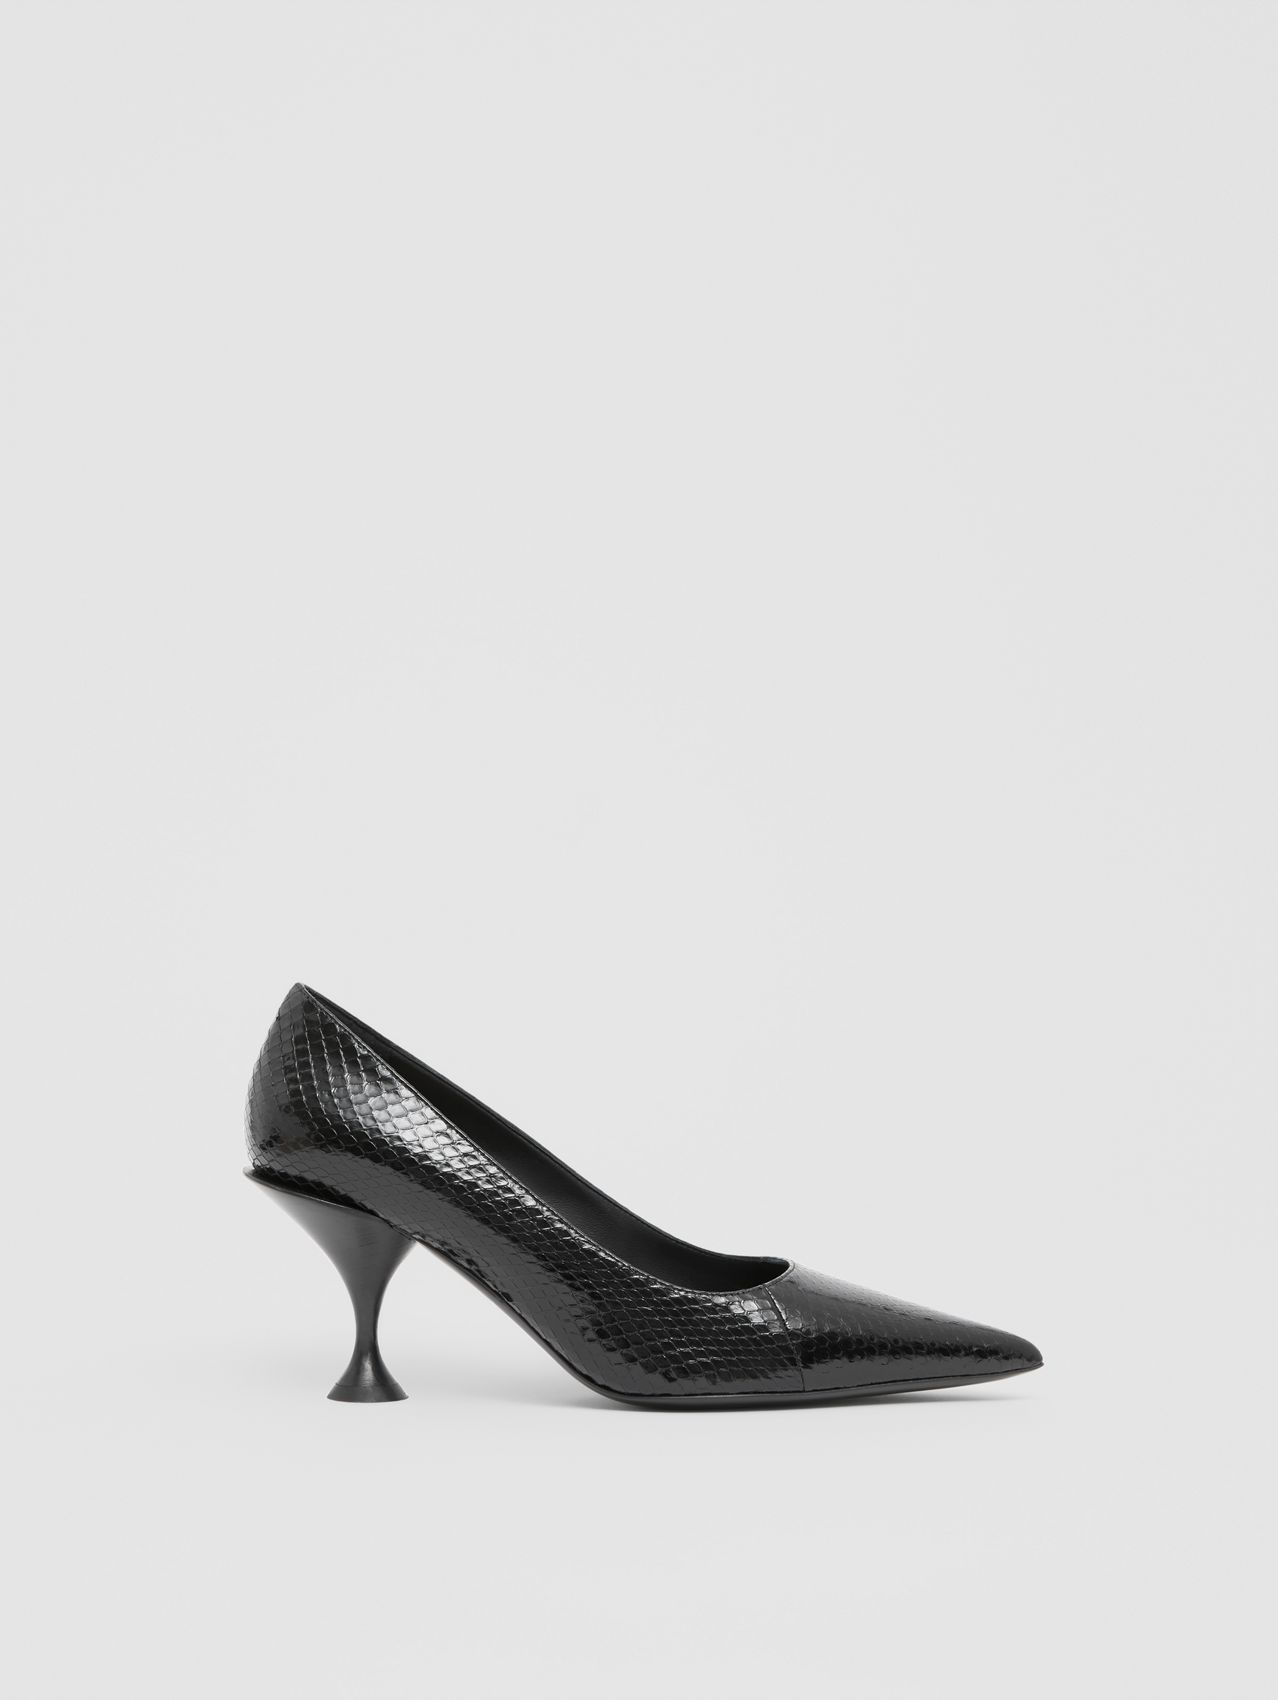 Snakeskin Point-toe Pumps in Black